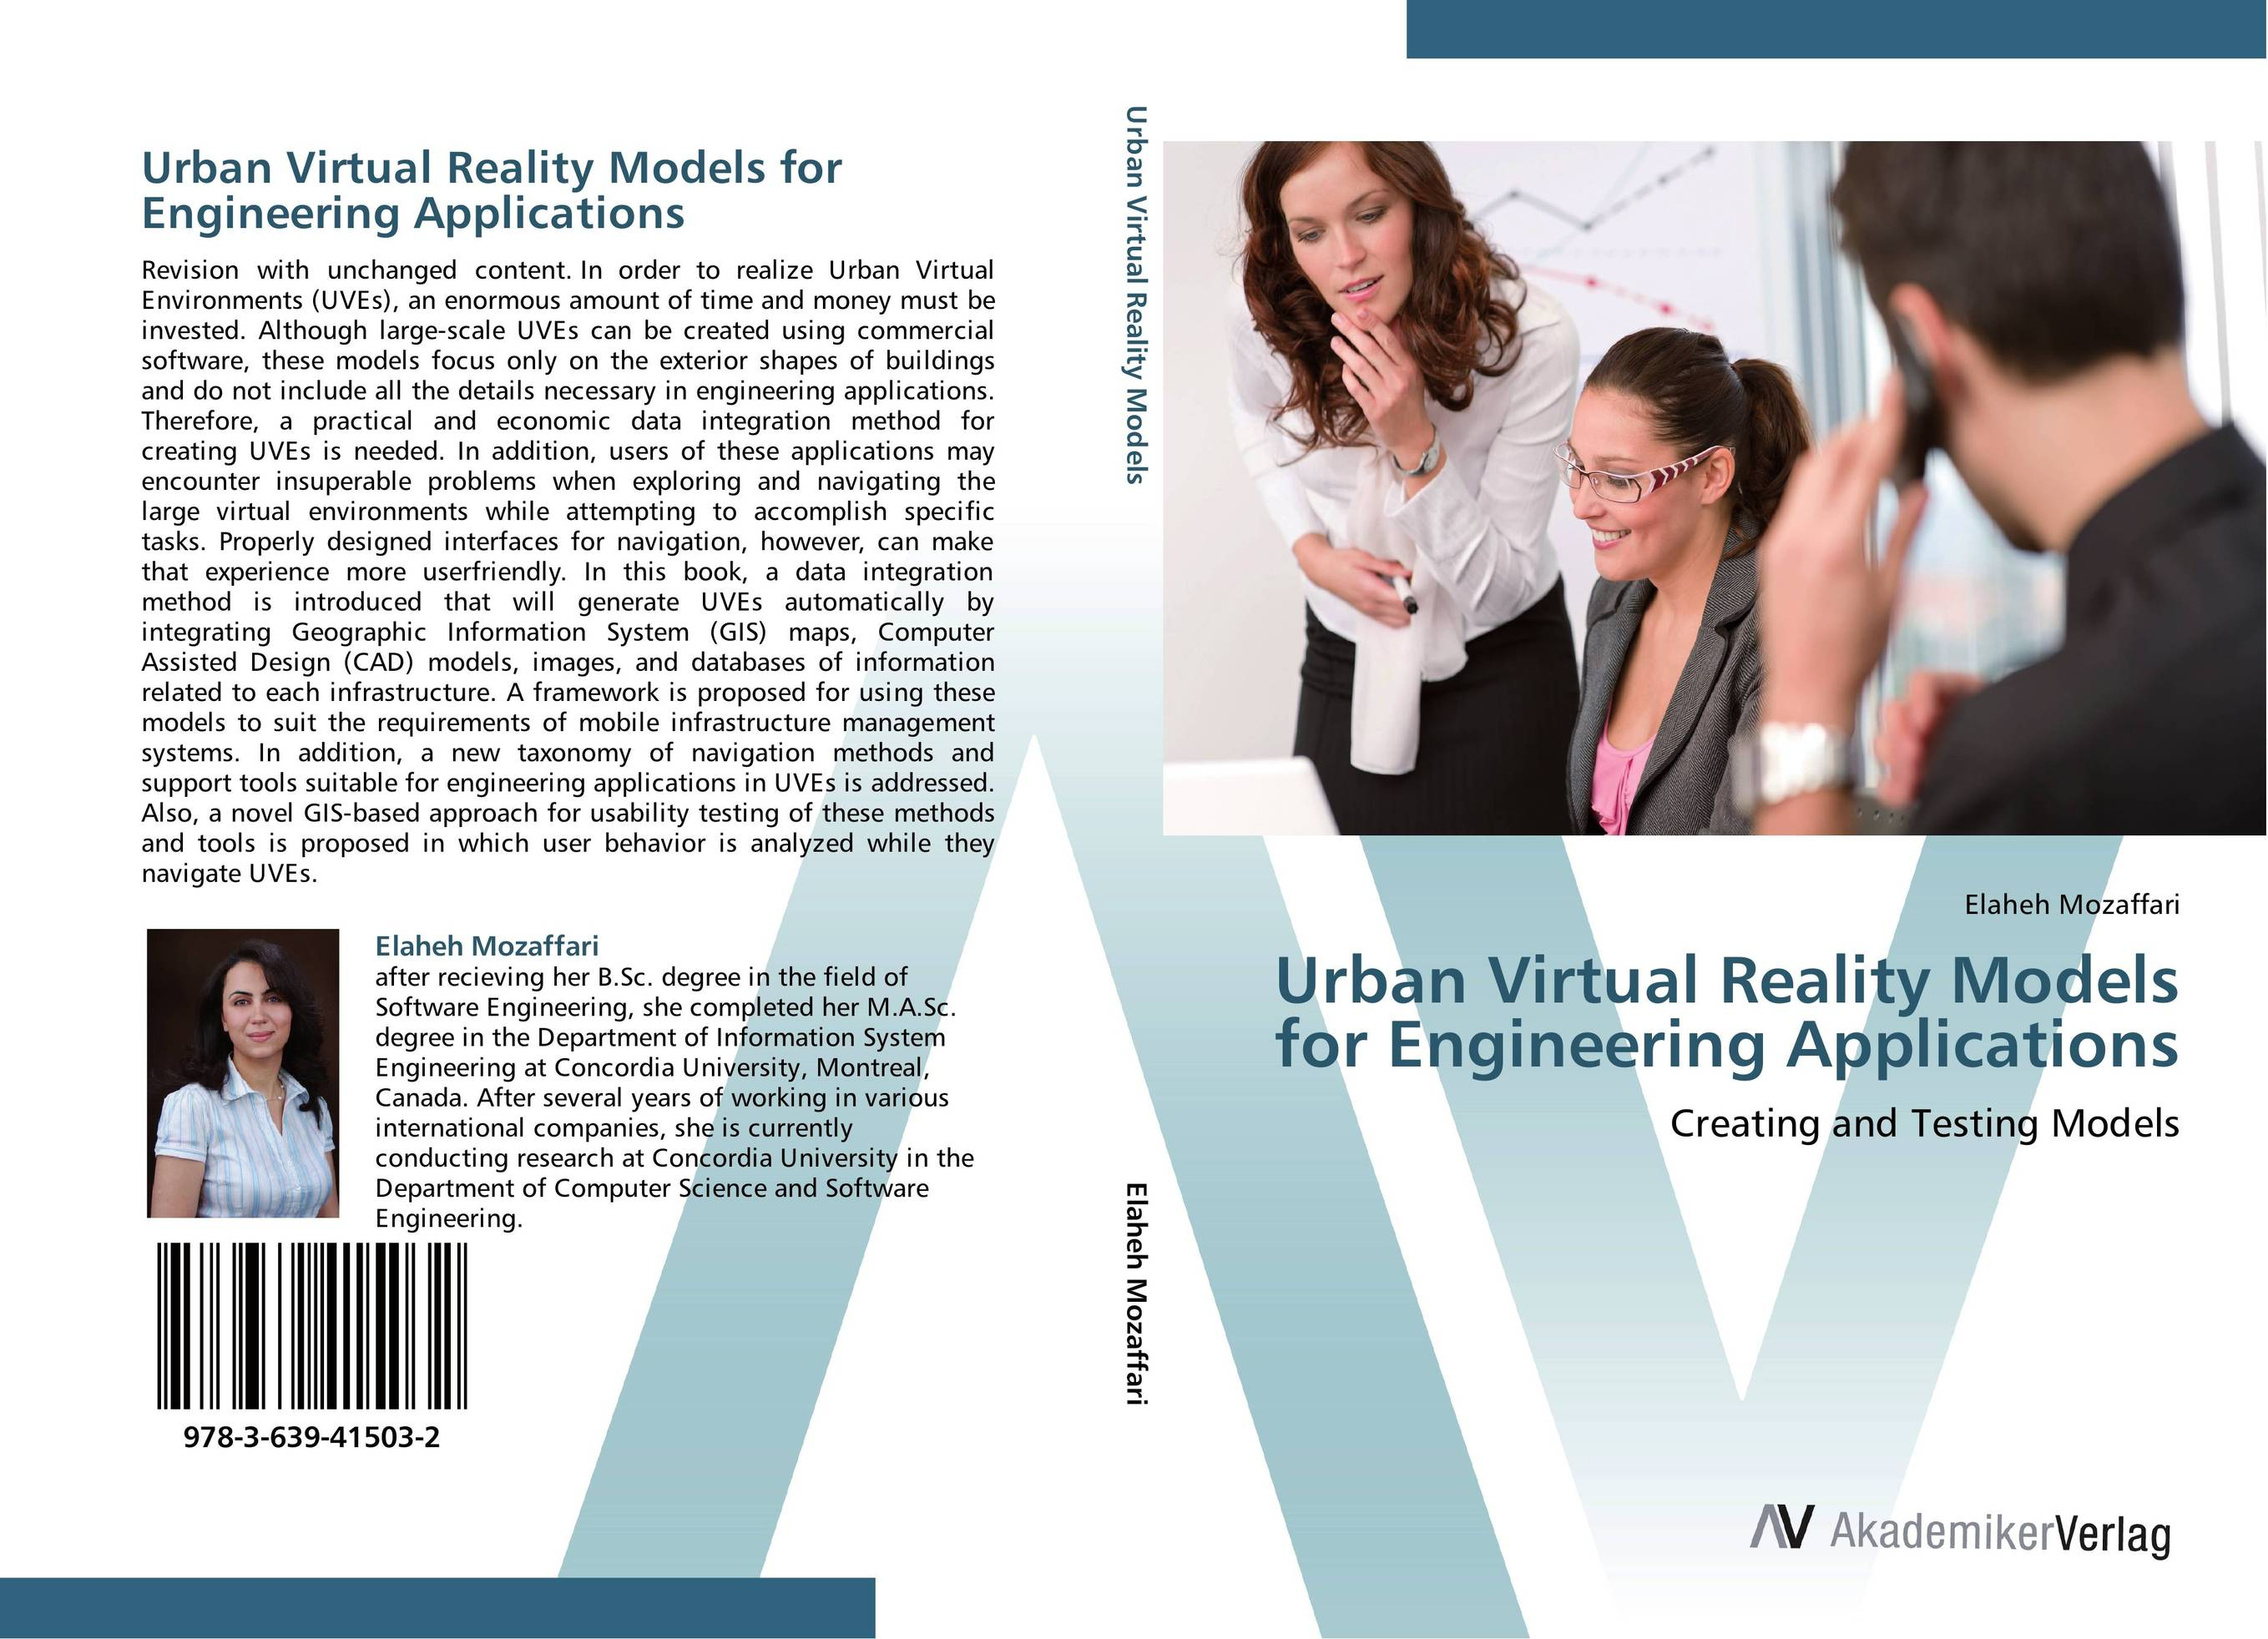 Urban Virtual Reality Models for Engineering Applications firas abdullah thweny al saedi and fadi khalid ibrahim al khalidi design of a three dimensional virtual reality environment